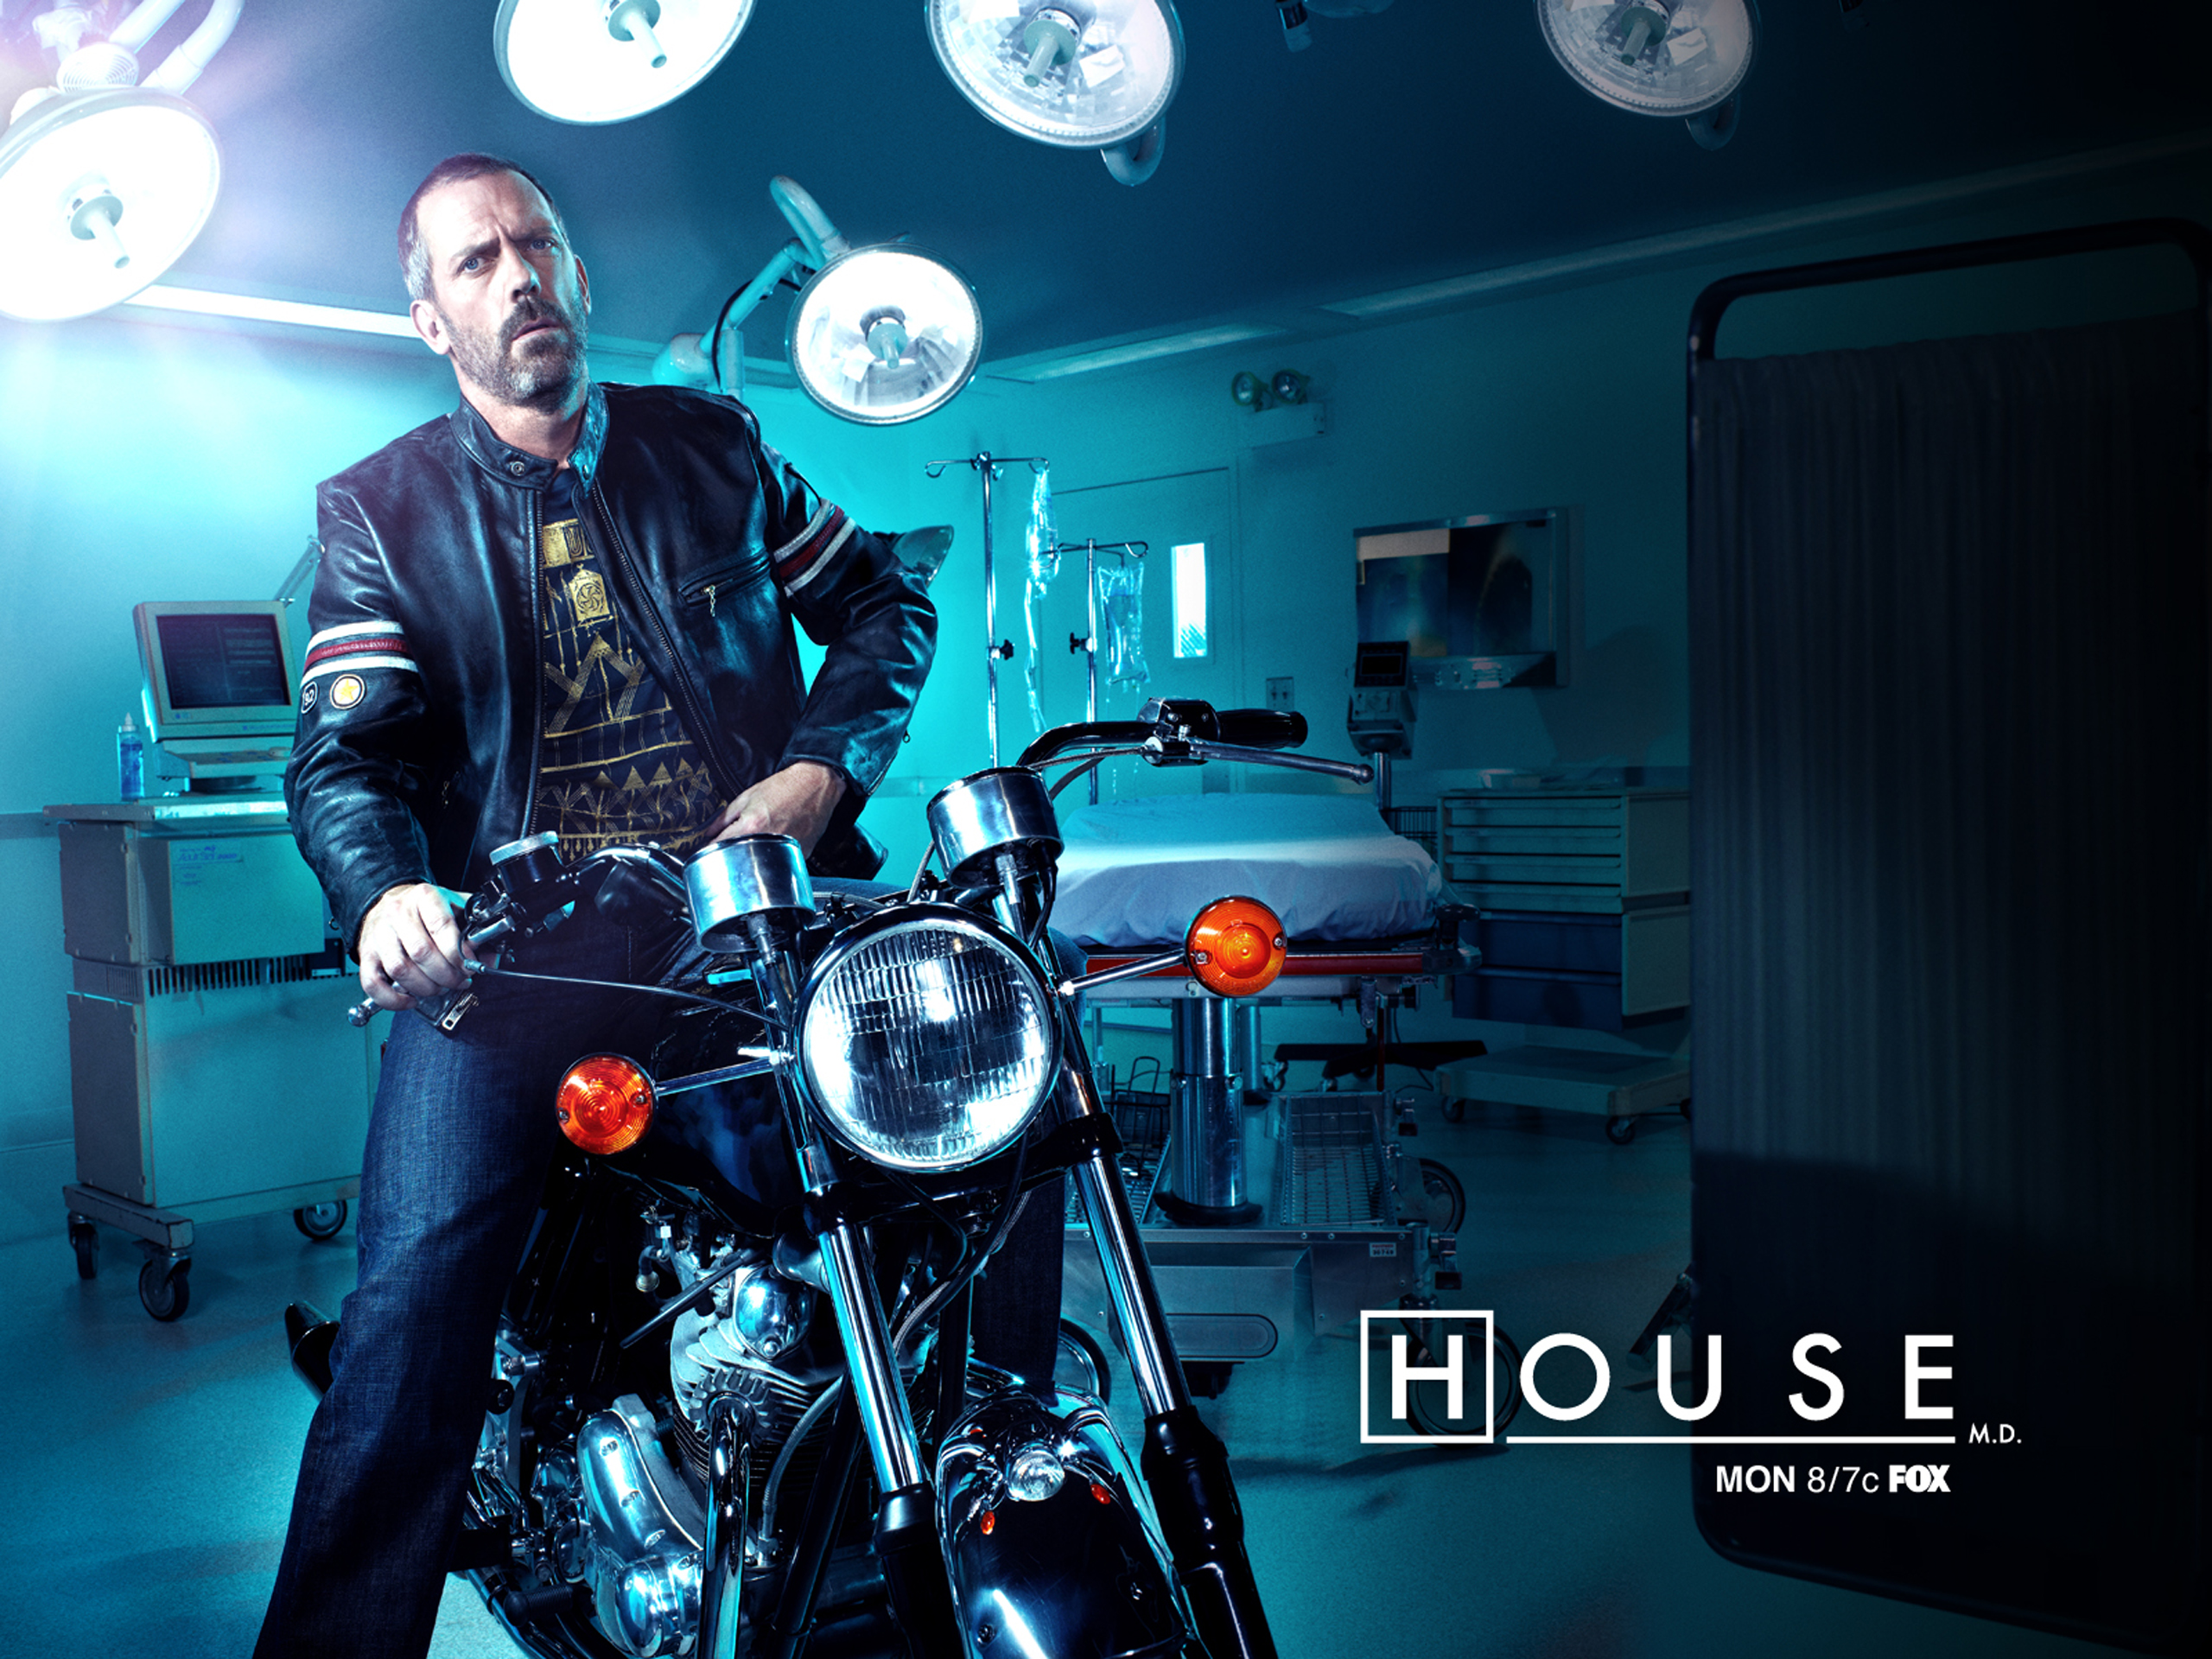 gregory house on motorbike 2560x1920